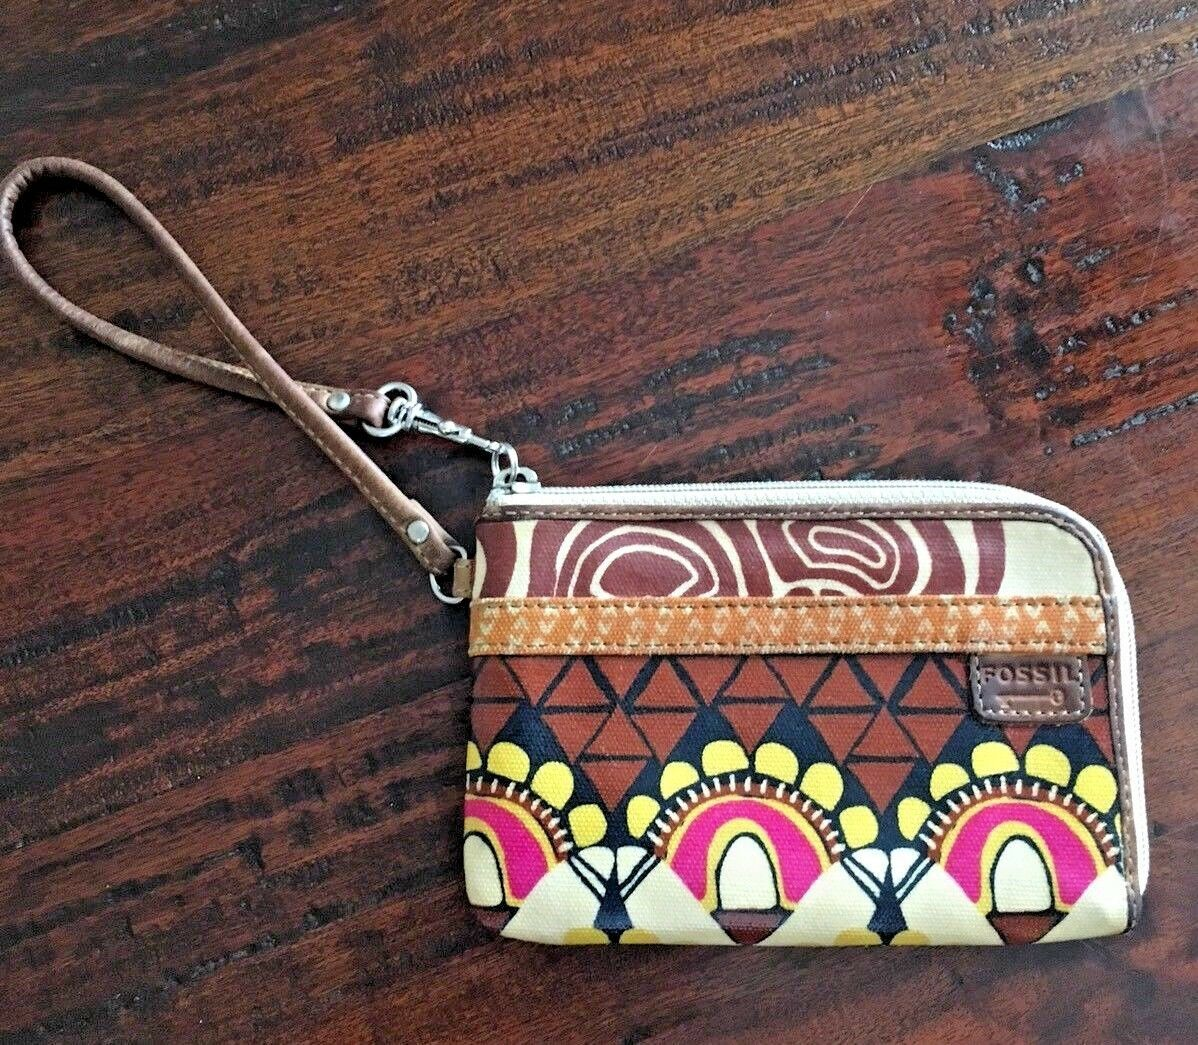 FOSSIL Key-Per Brown Floral Pattern Zip Around Coated Canvas Wallet 6x4 image 2